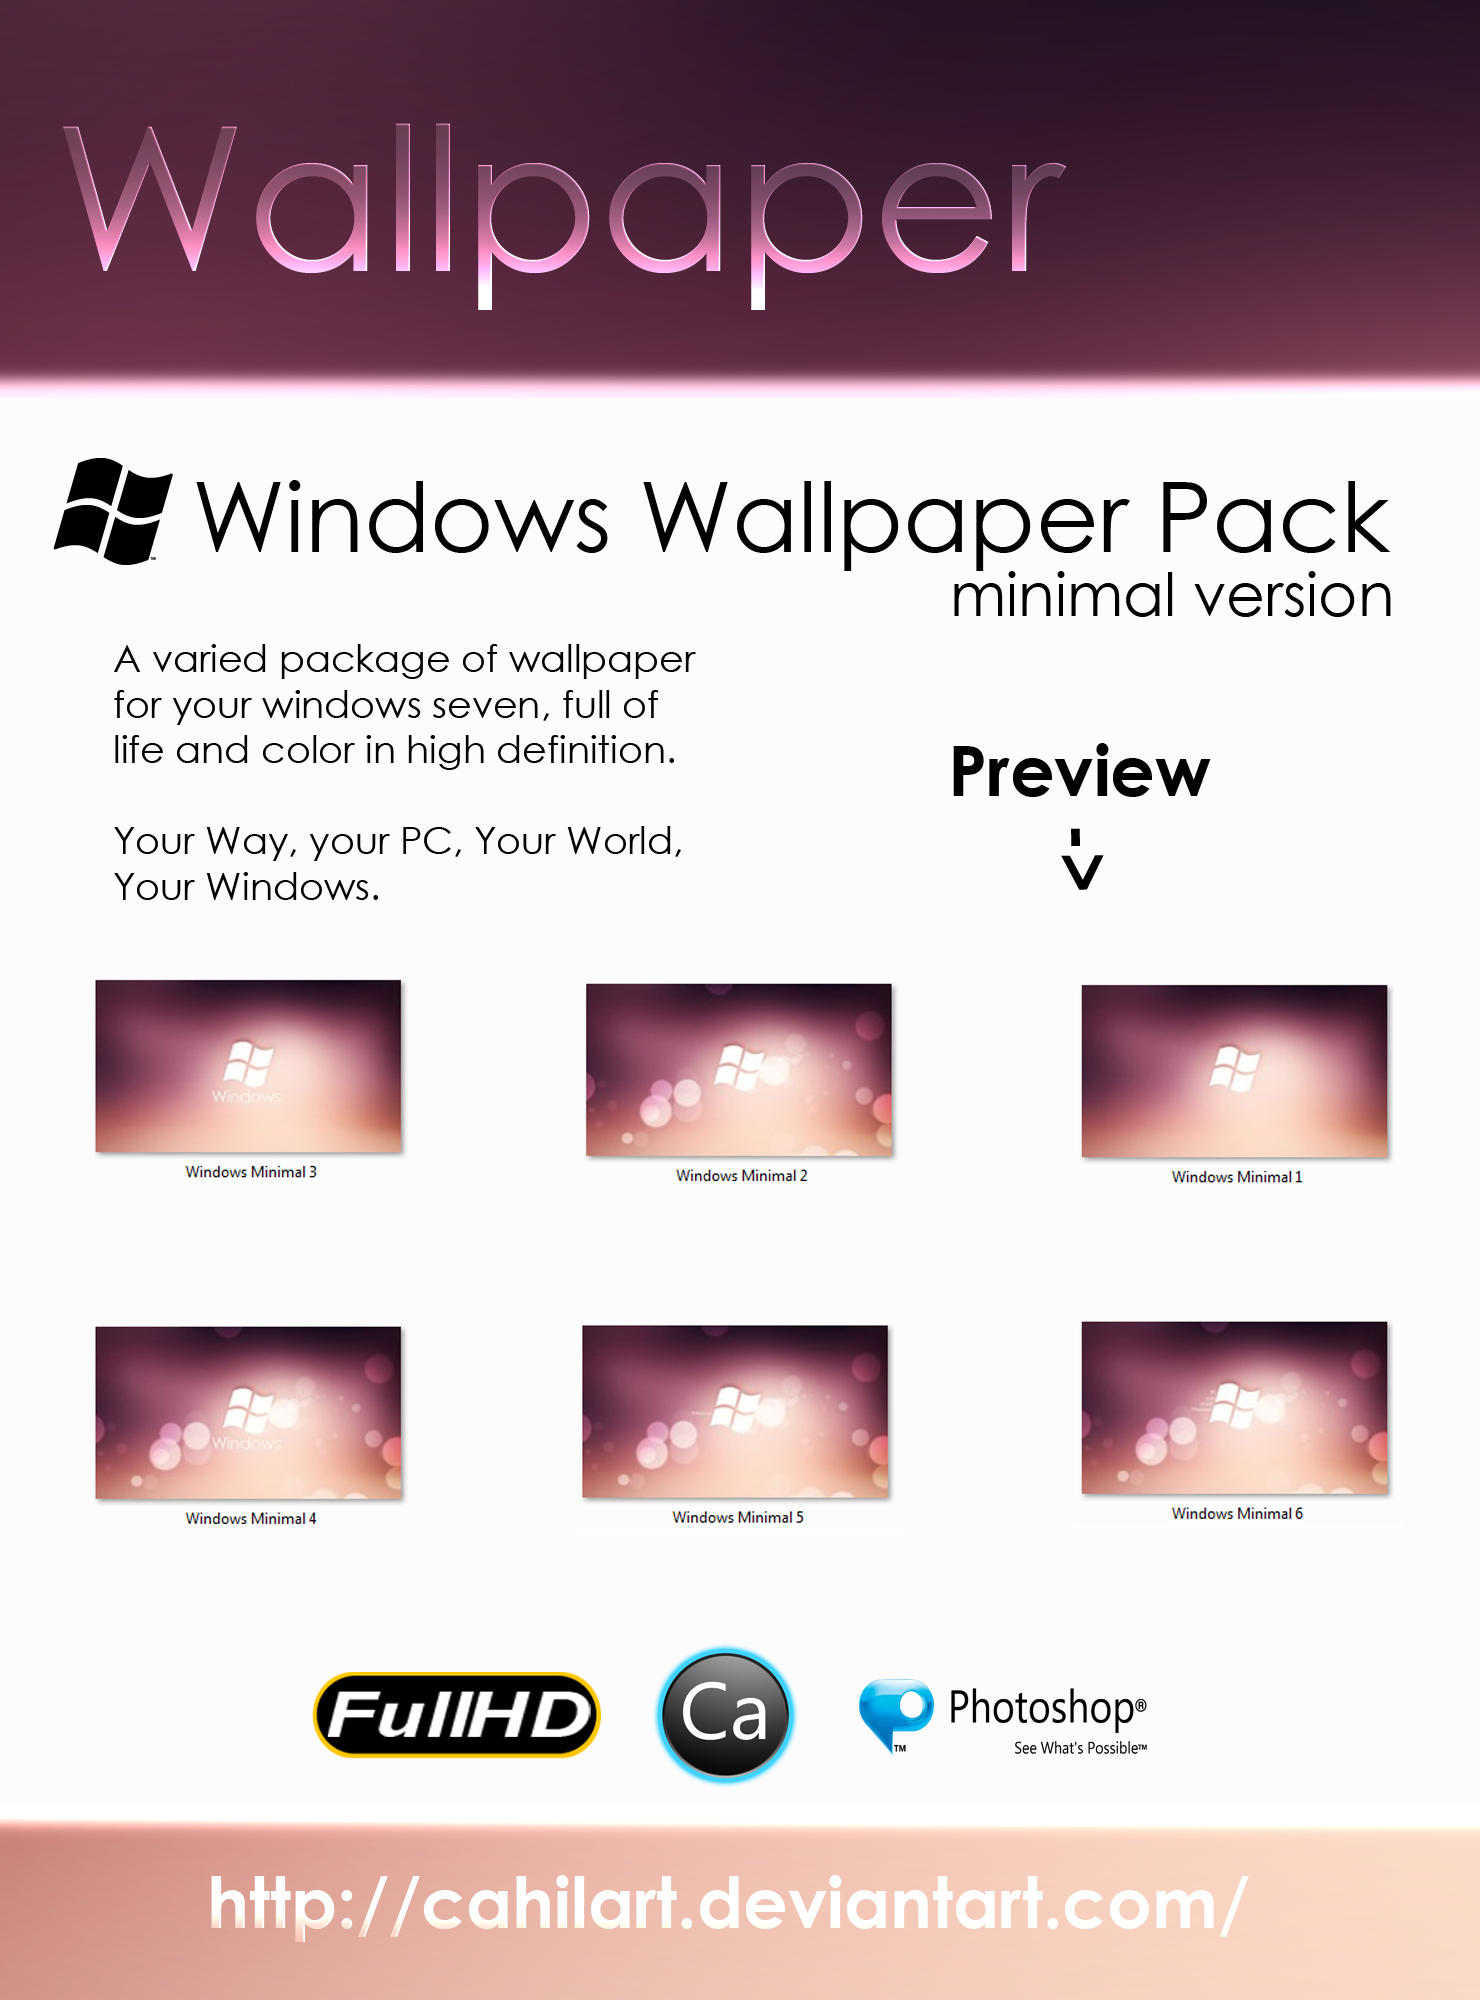 Wallpaper Windows Minimal Pack by CaHilART